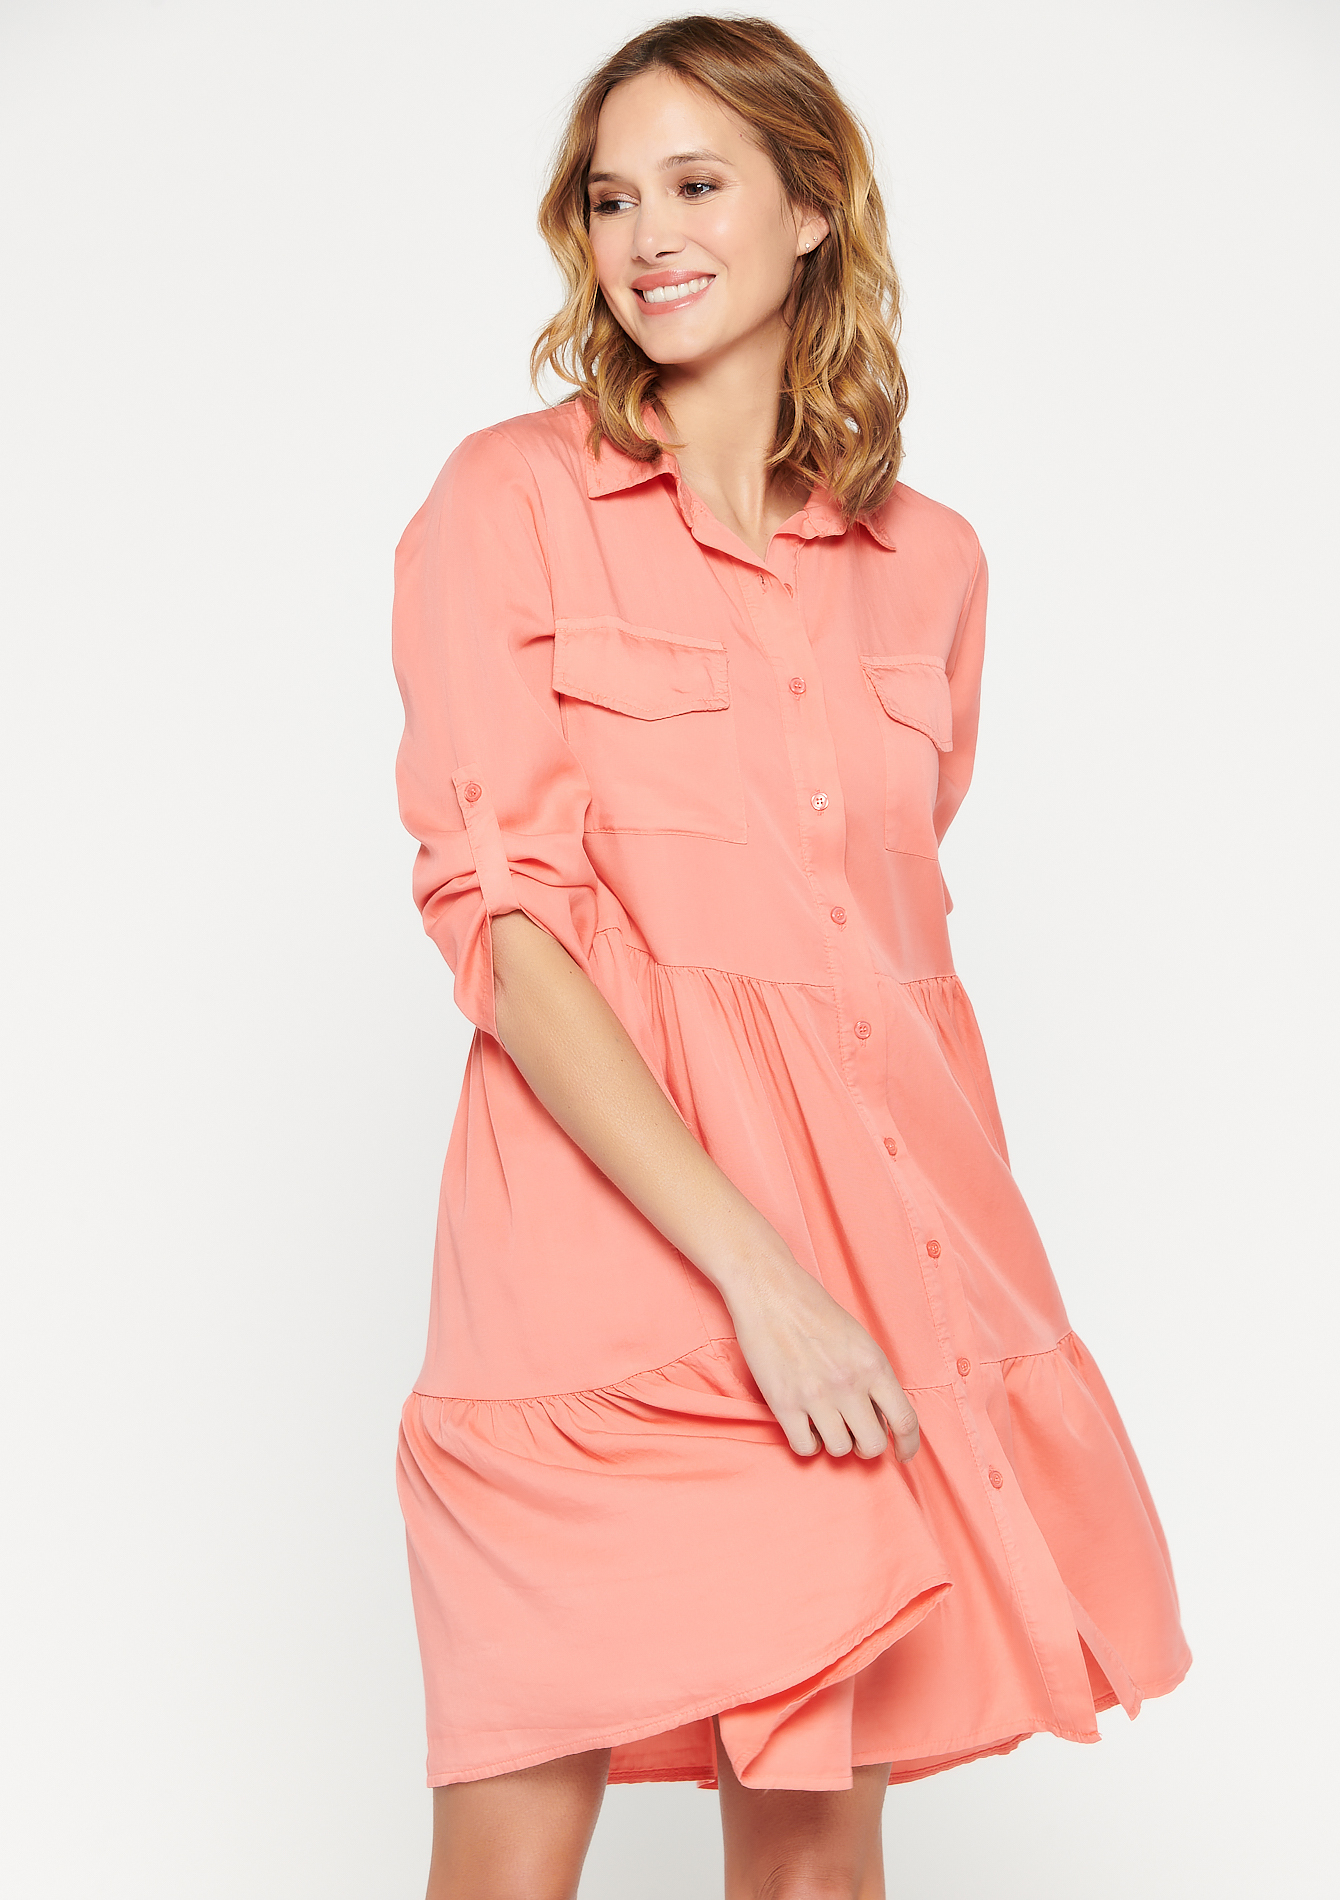 Shirt dress with pleats and buttons - CORAL EMBERGLOW - 08102470_5404